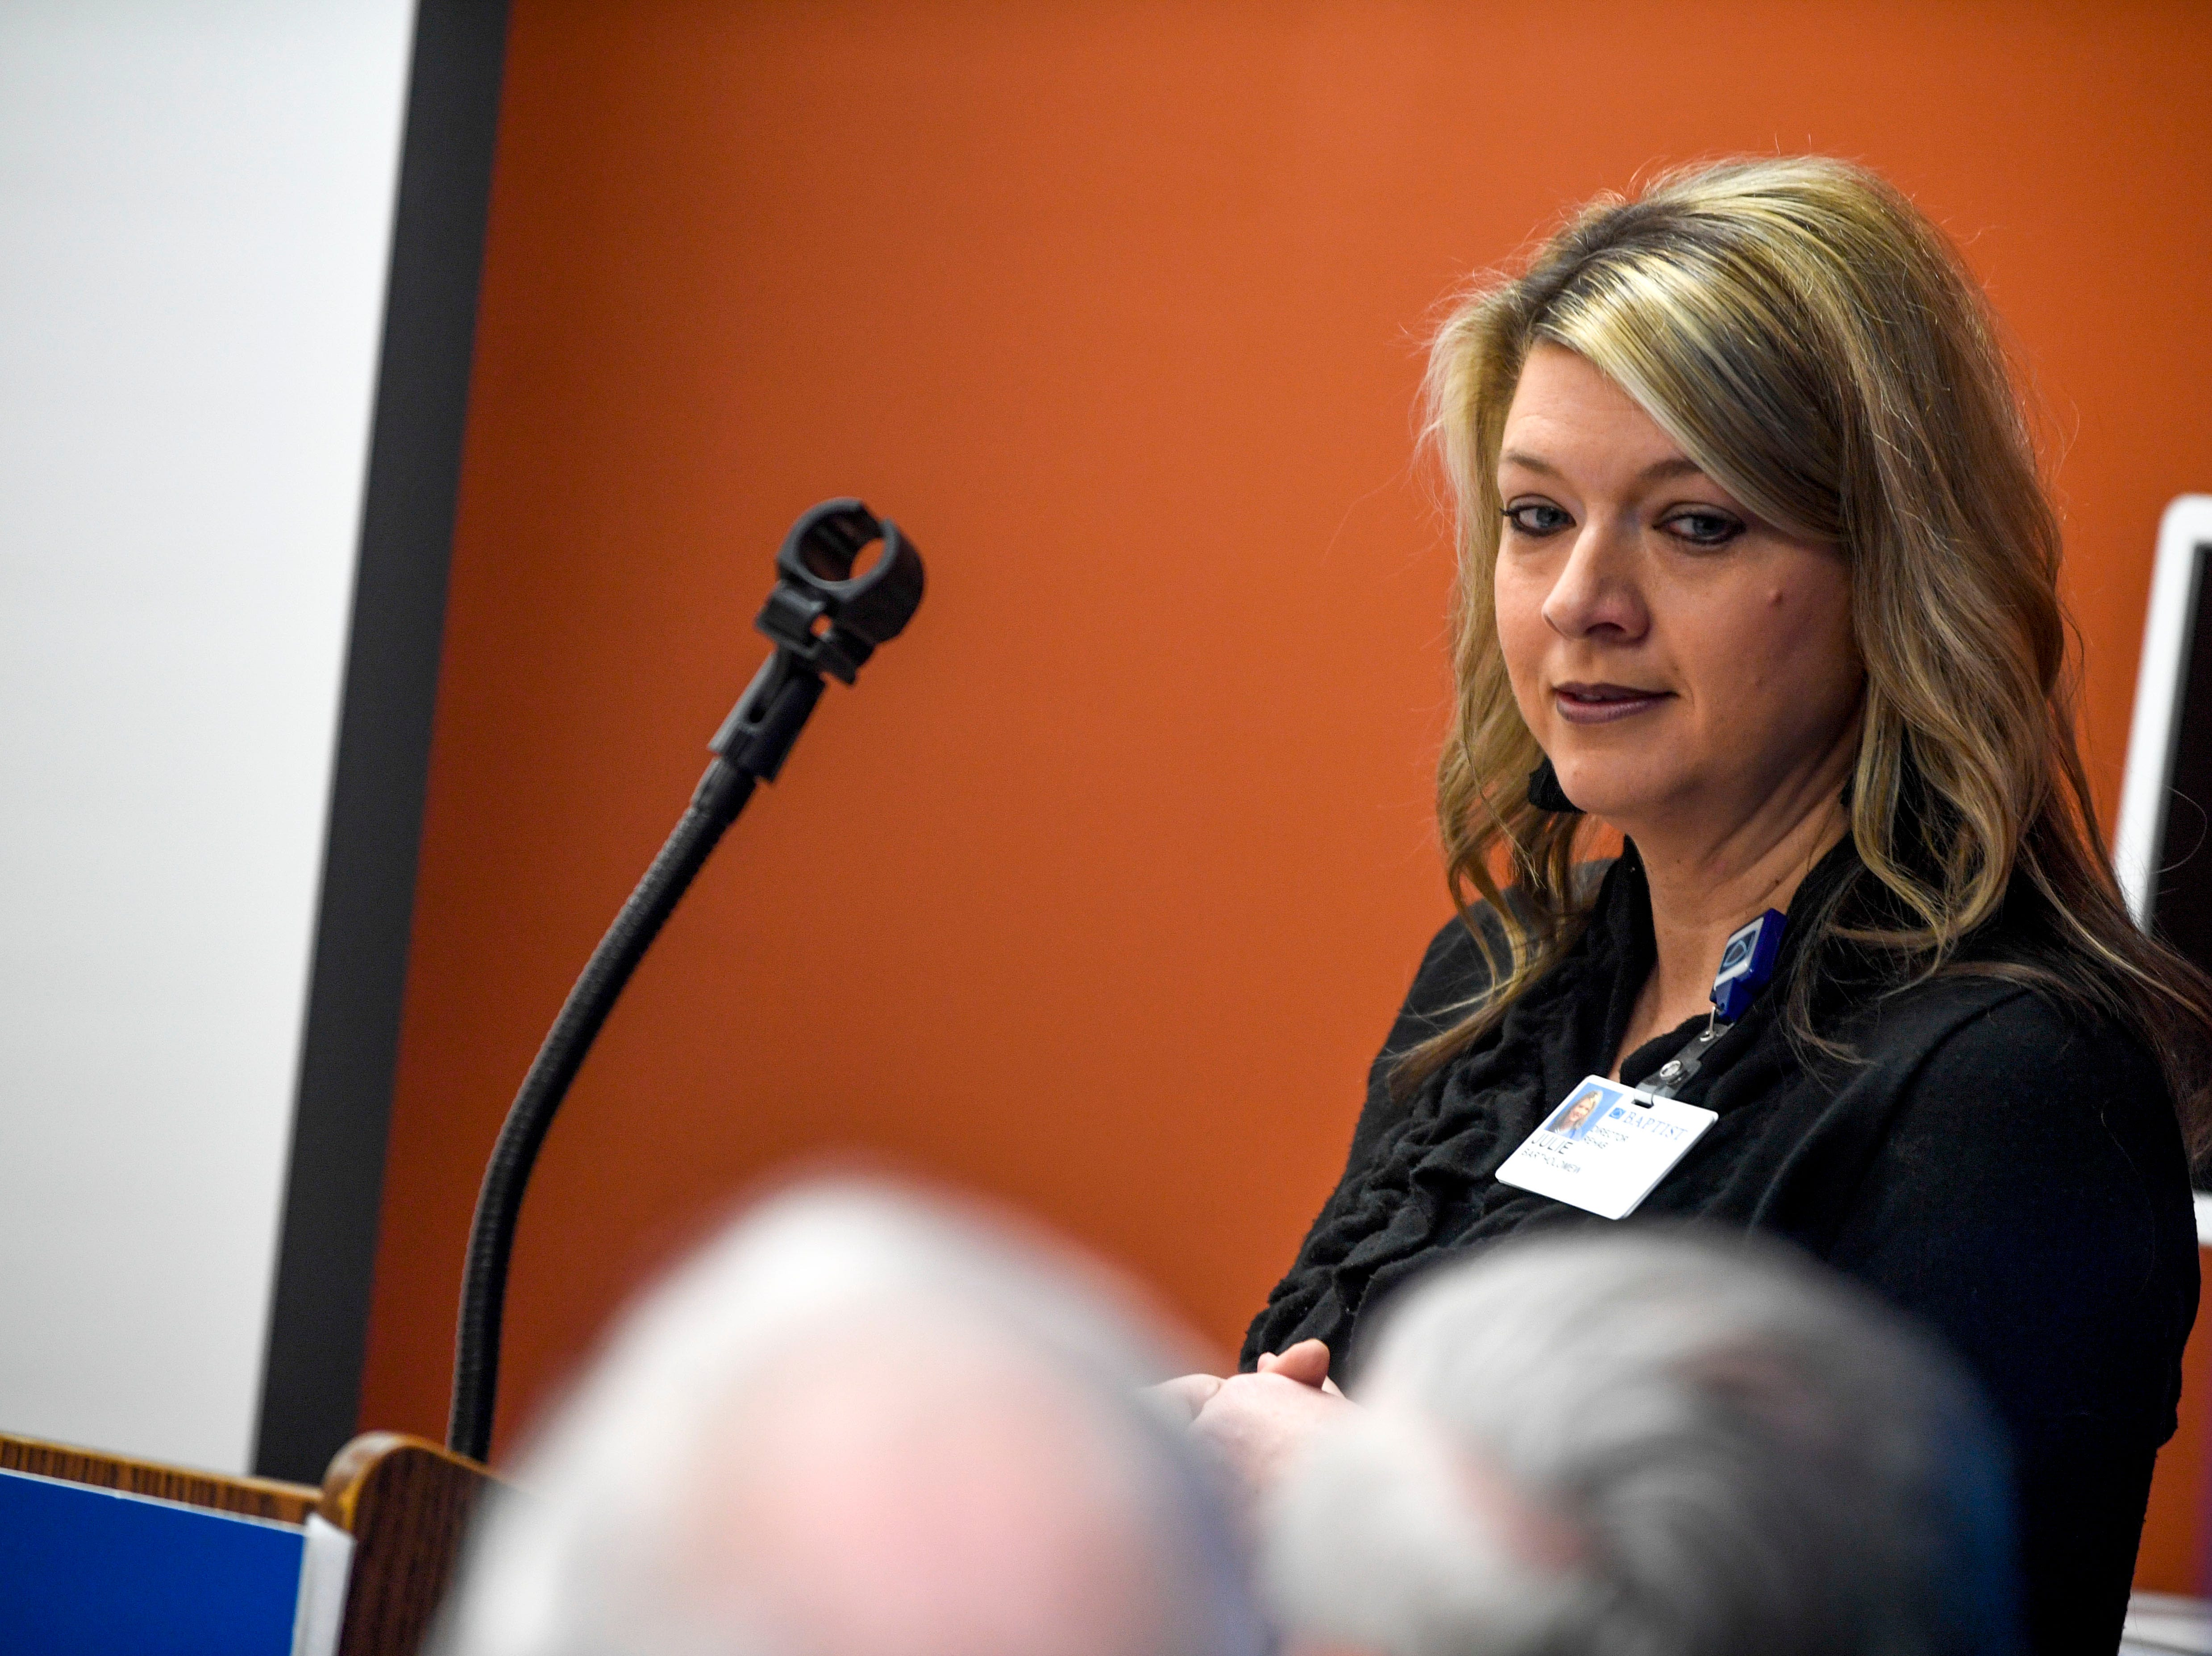 Julie Bartholomew speaks to those in attendance at an informational meeting and demonstration of telemedicine machines at Baptist Memorial Hospital in Huntingdon, Tenn., on Friday, Feb. 8, 2019.